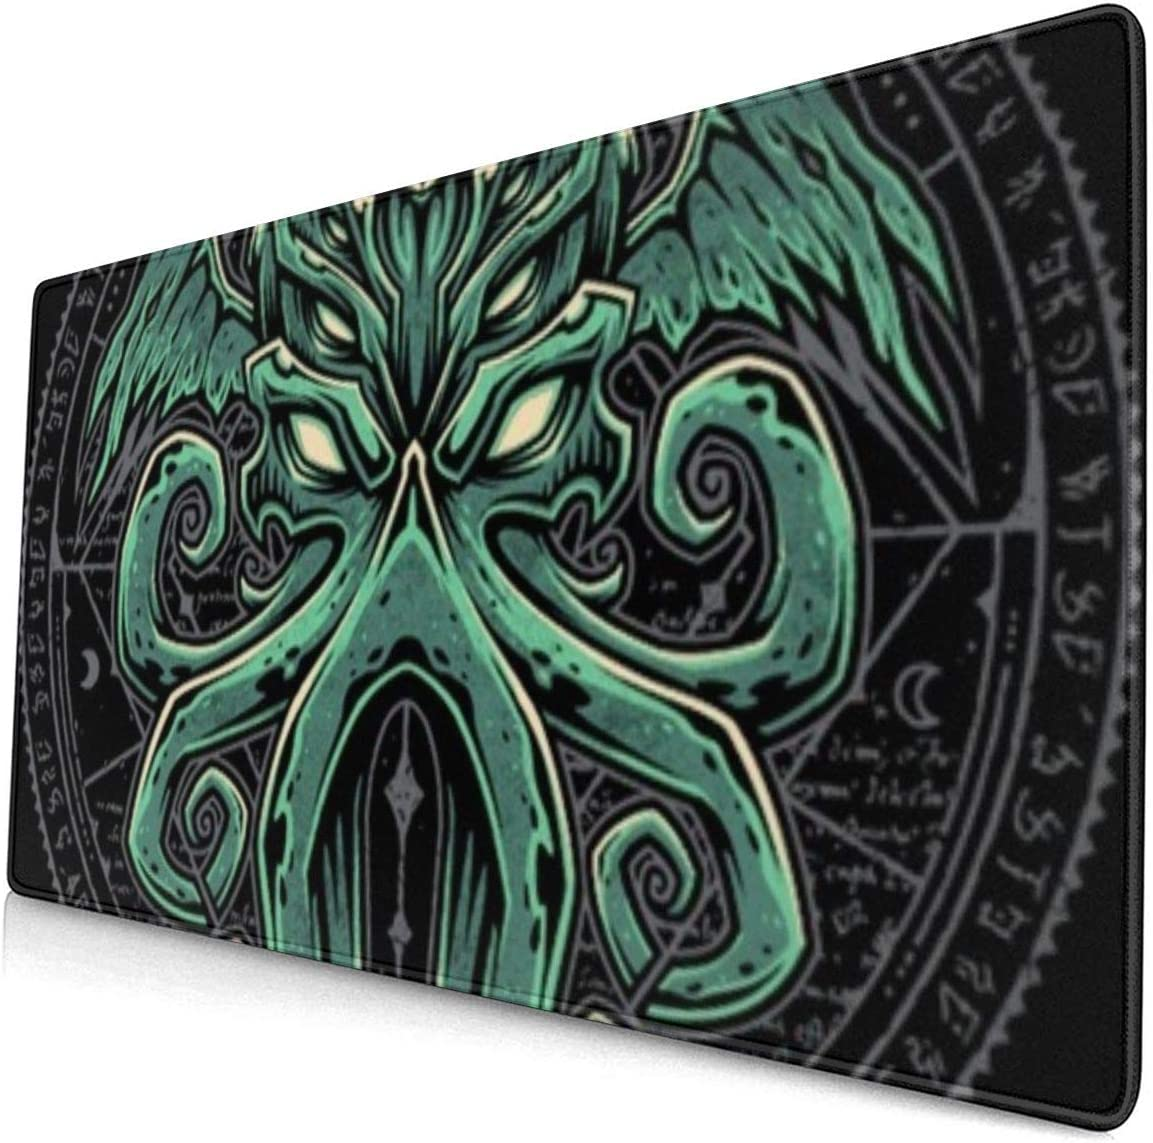 Rectangular Mouse Pad Great Cthulhu Non-Slip Rubber Gaming Mouse Pad Gaming Mouse Pad